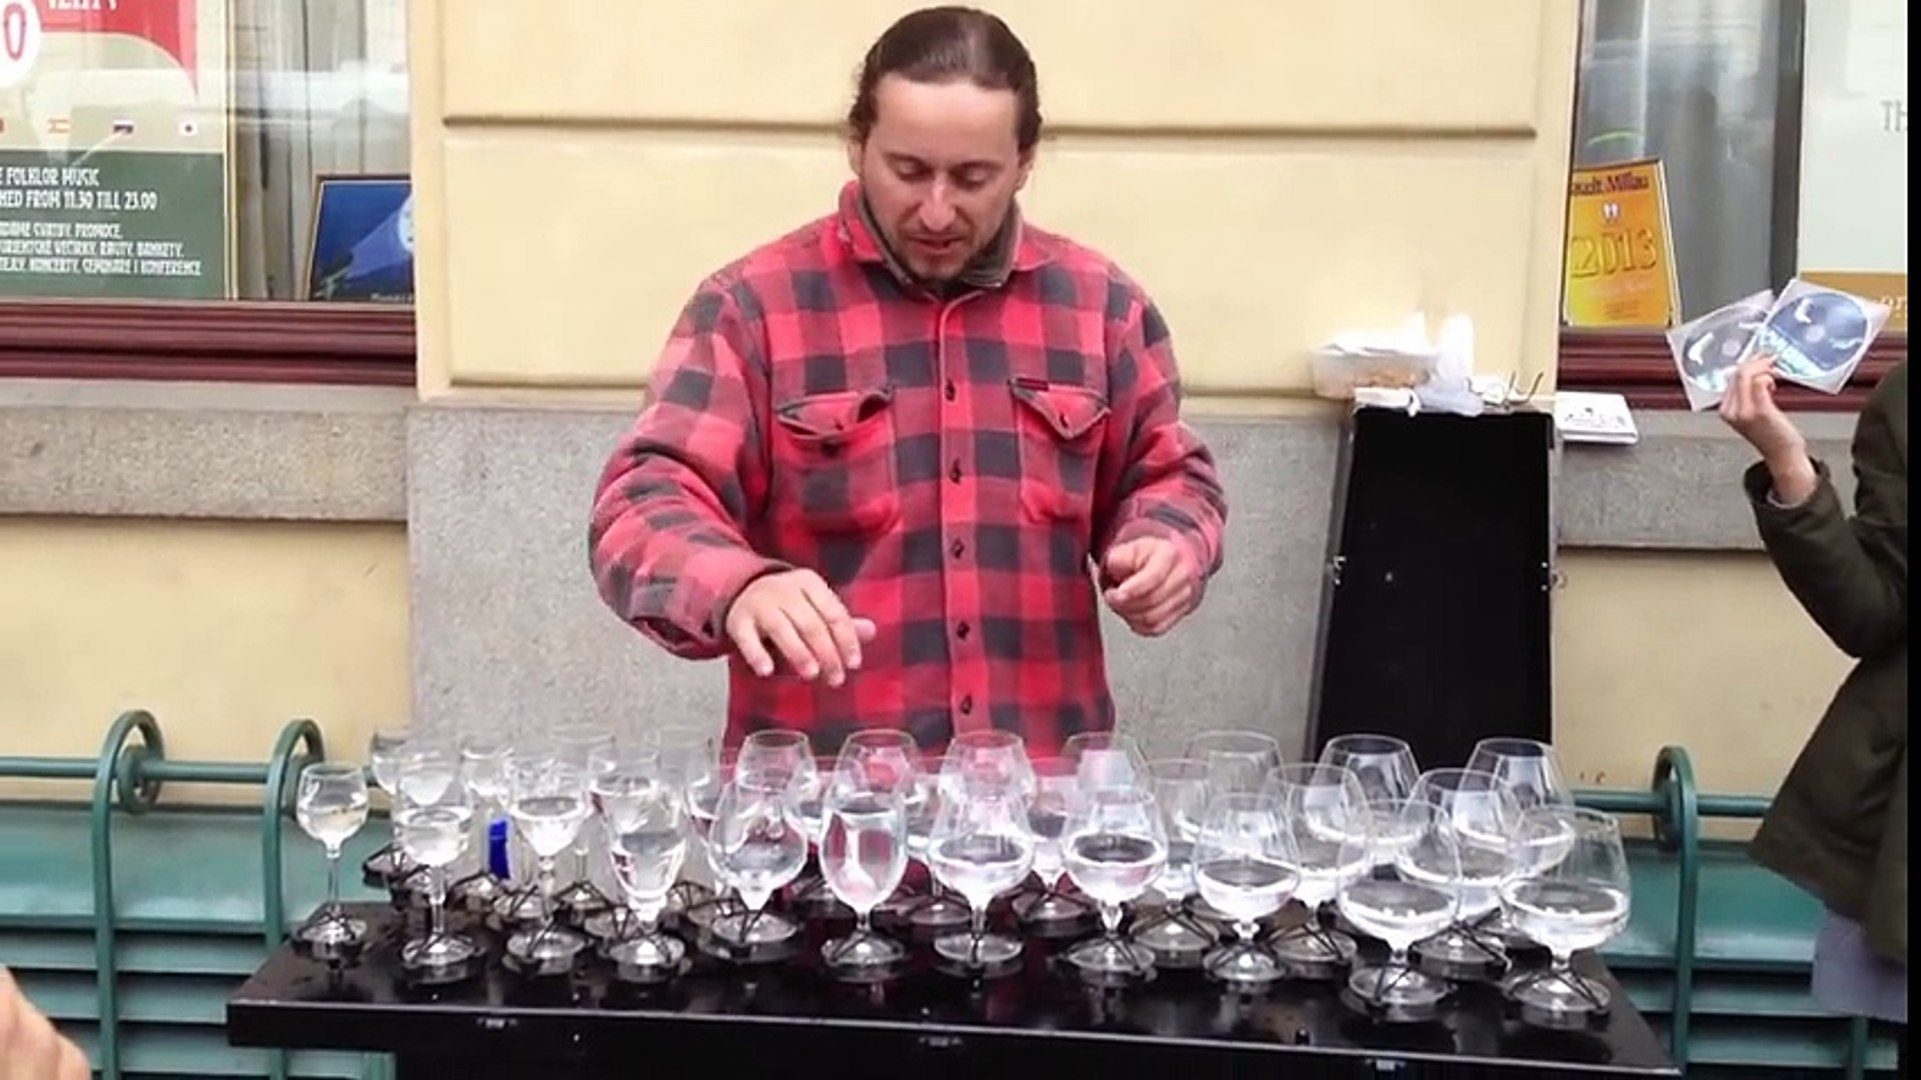 Crazy Performance! Street Musician Playing Water Glasses! Epic Talented Street Artists...